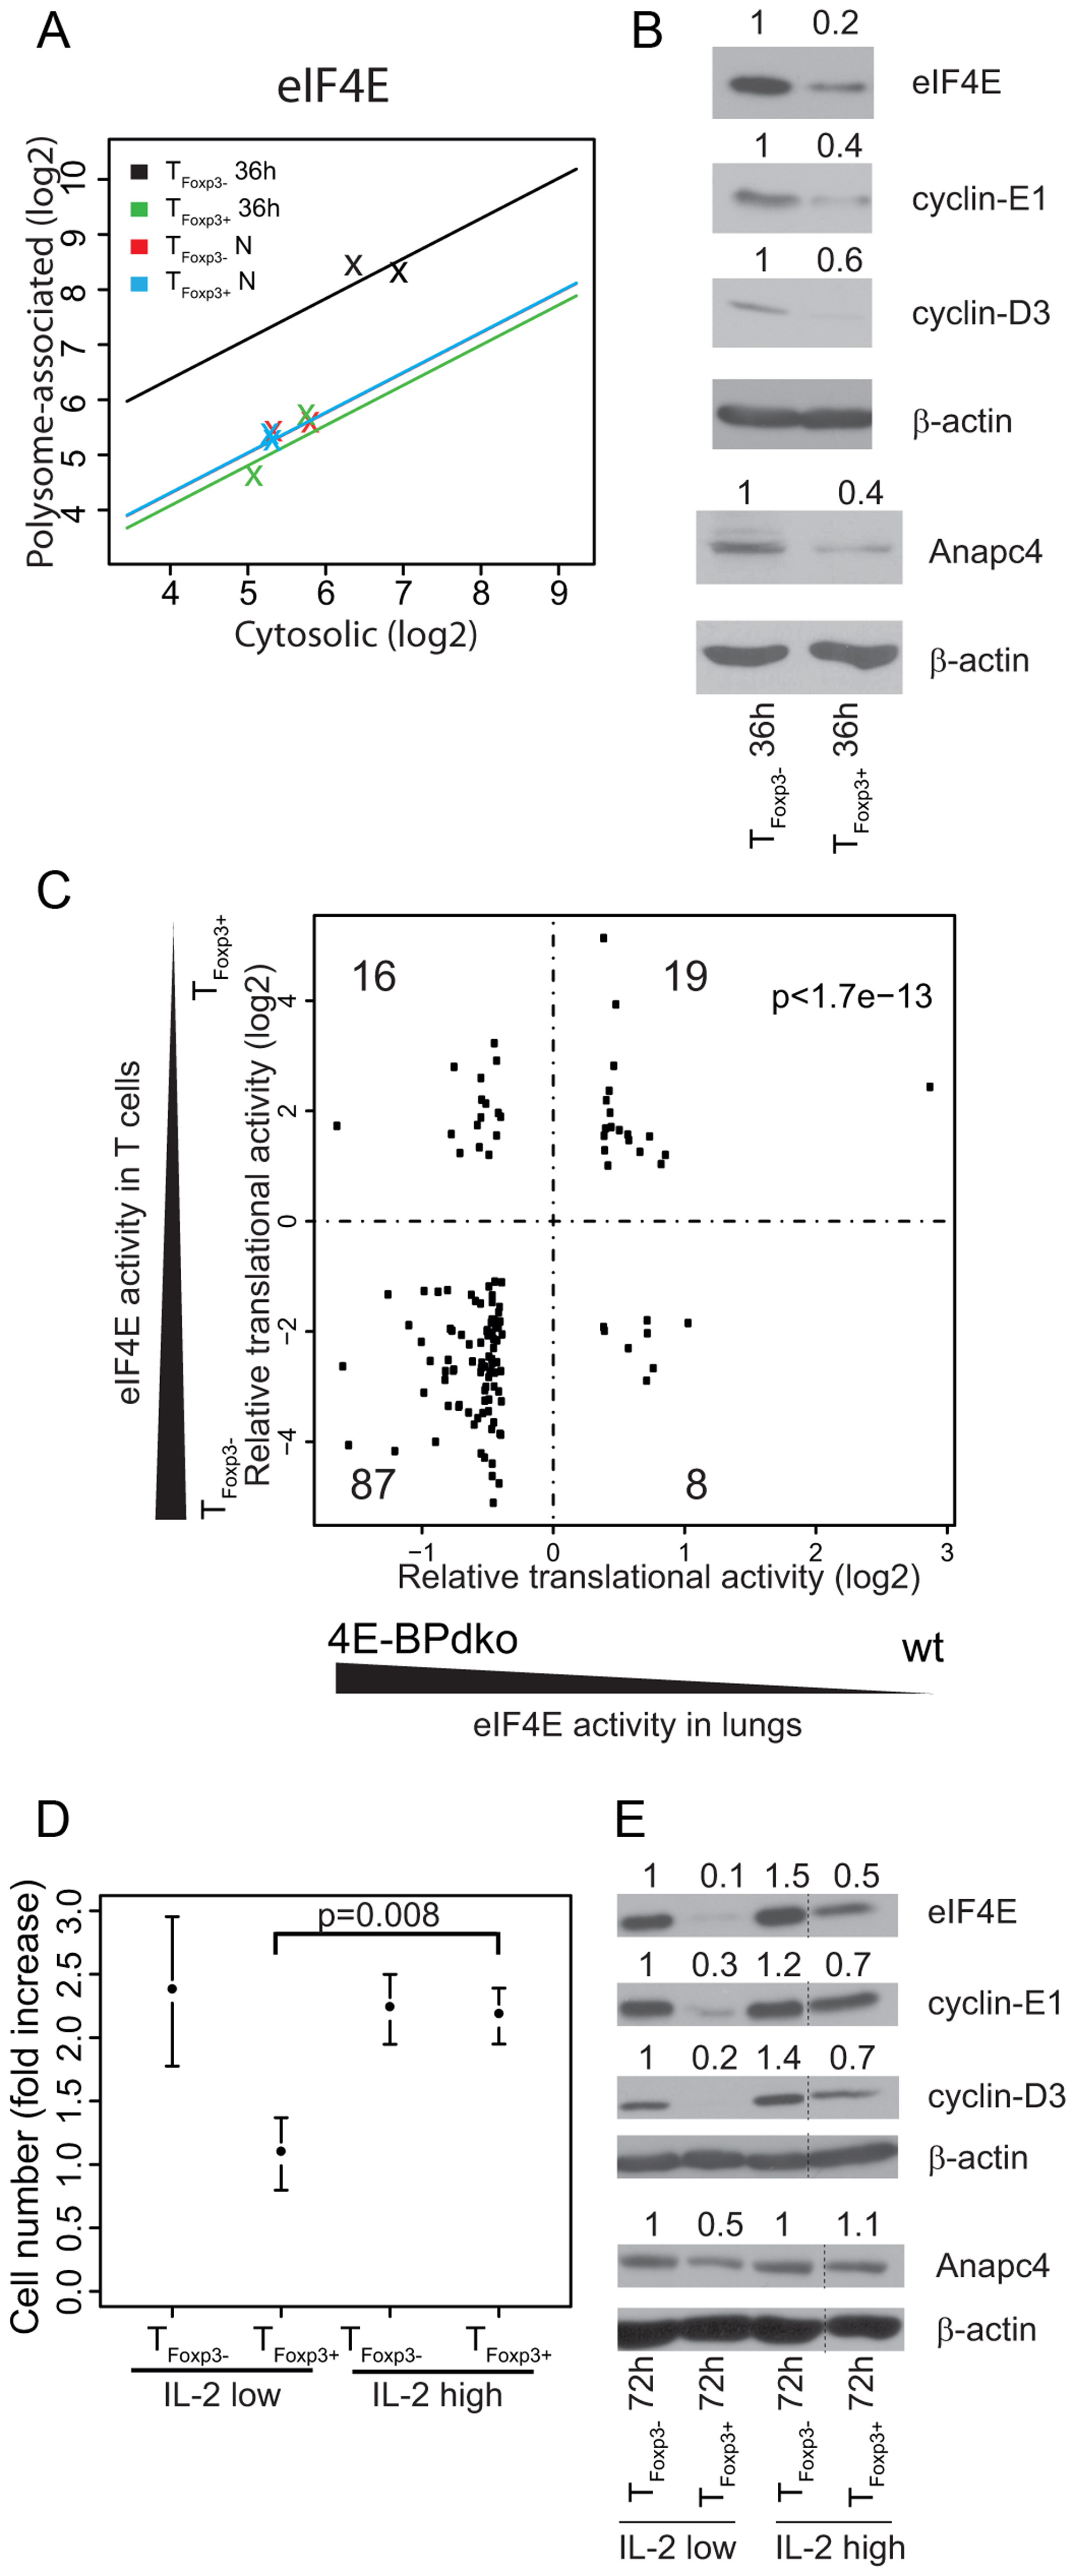 Differential levels of eIF4E between T<sub>Foxp3+</sub> and T<sub>Foxp3−</sub> cells partly explain their translational signature and correlate with CD4<sup>+</sup> T cell subset proliferation.